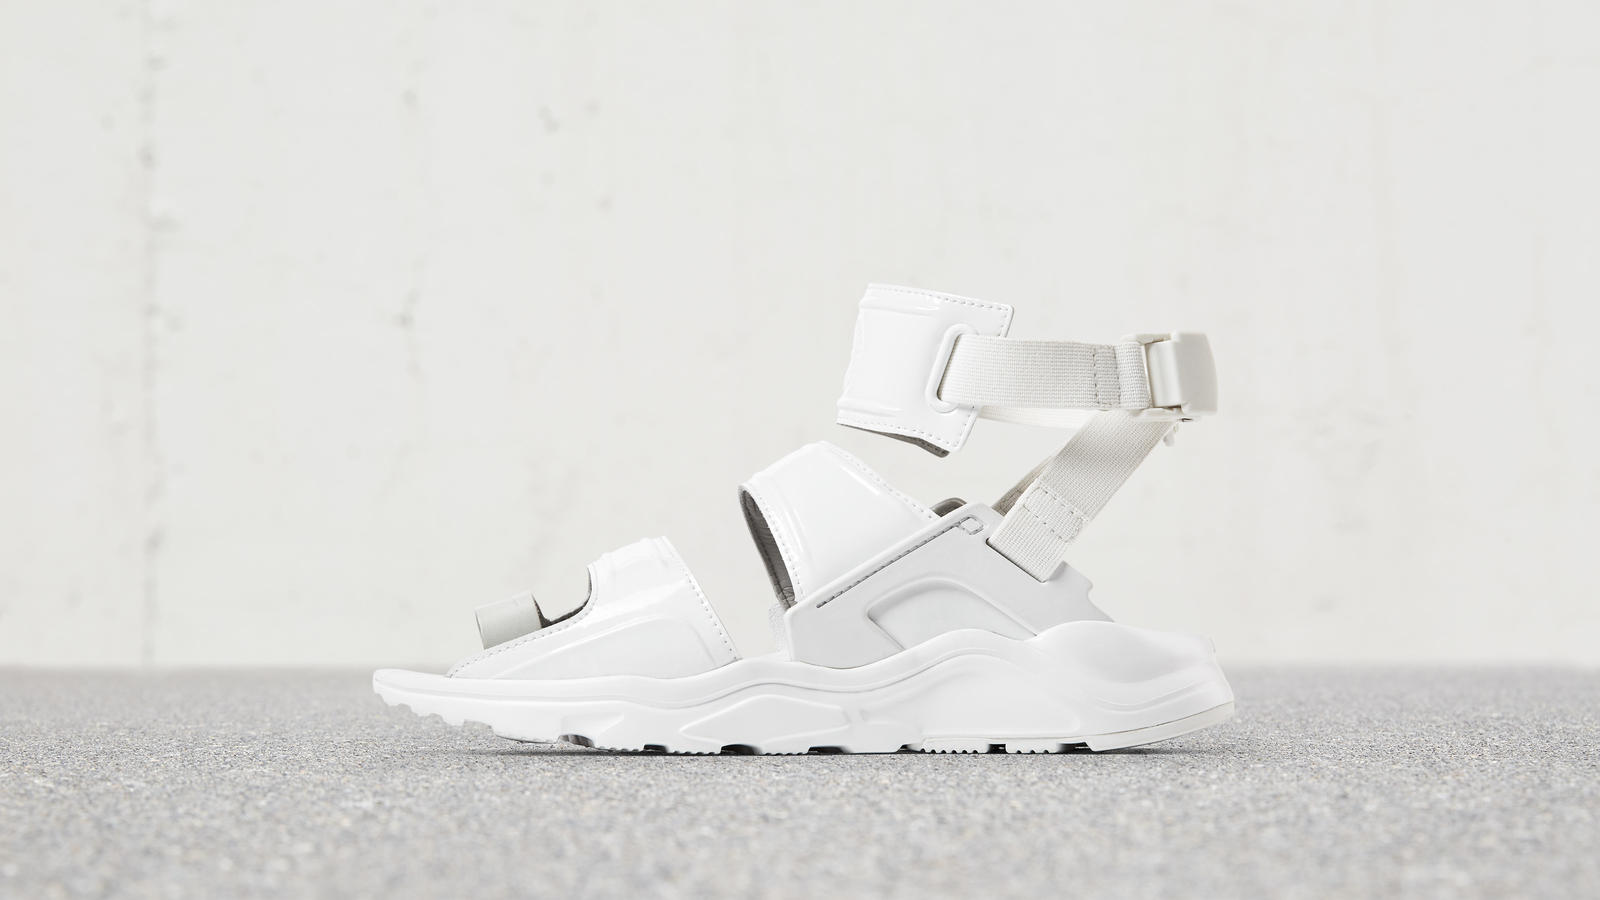 Nike Weartesters Quickstrike Huarache Are Gladiator Air Sandals Coming 5RAjL34